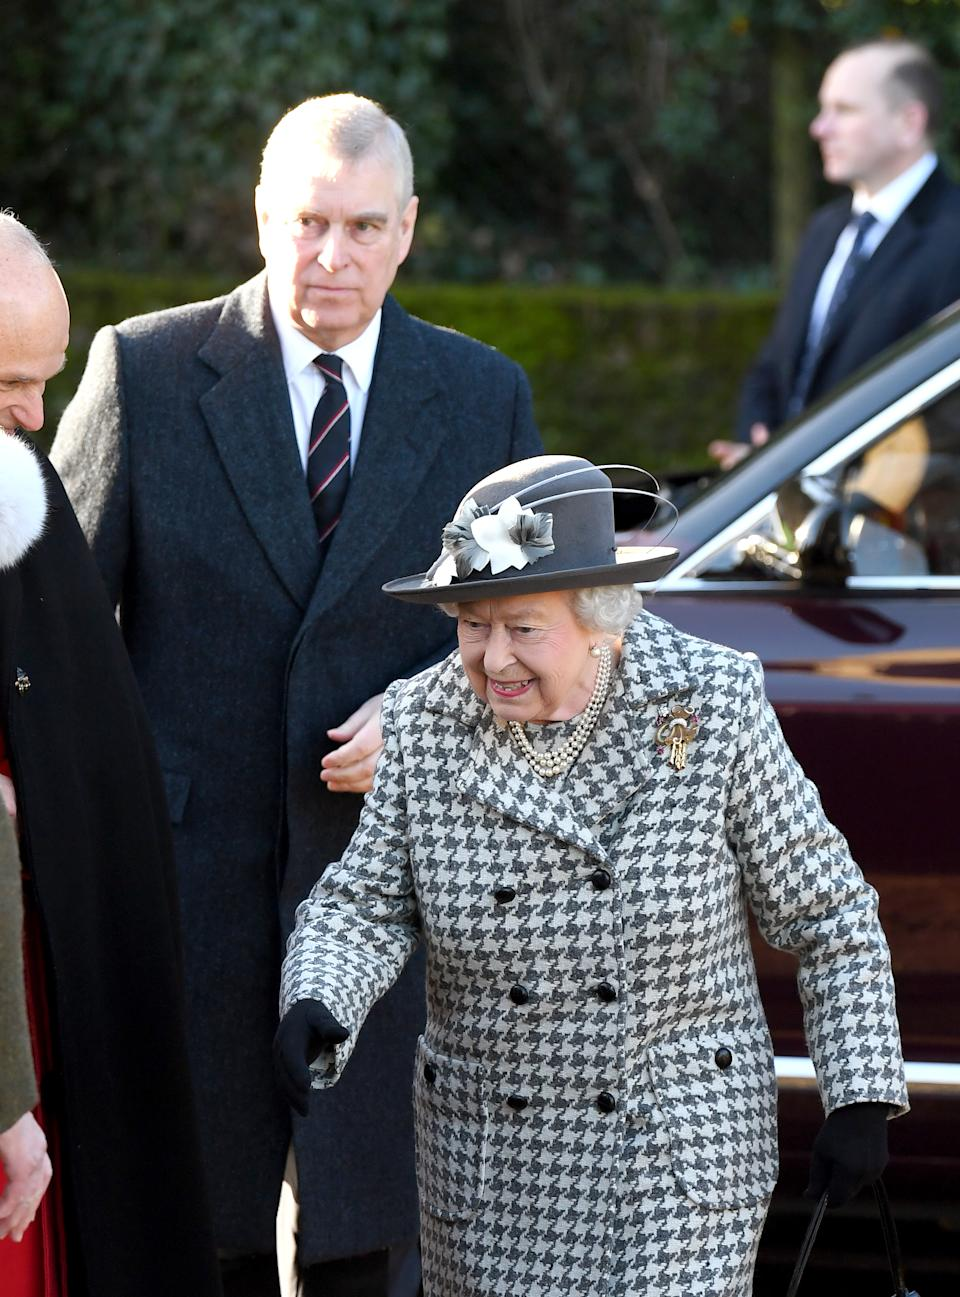 Queen Elizabeth II and Prince Andrew, Duke of York attend church at St Mary the Virgin church at Hillington in Sandringham on January 19, 2020 in King's Lynn, England